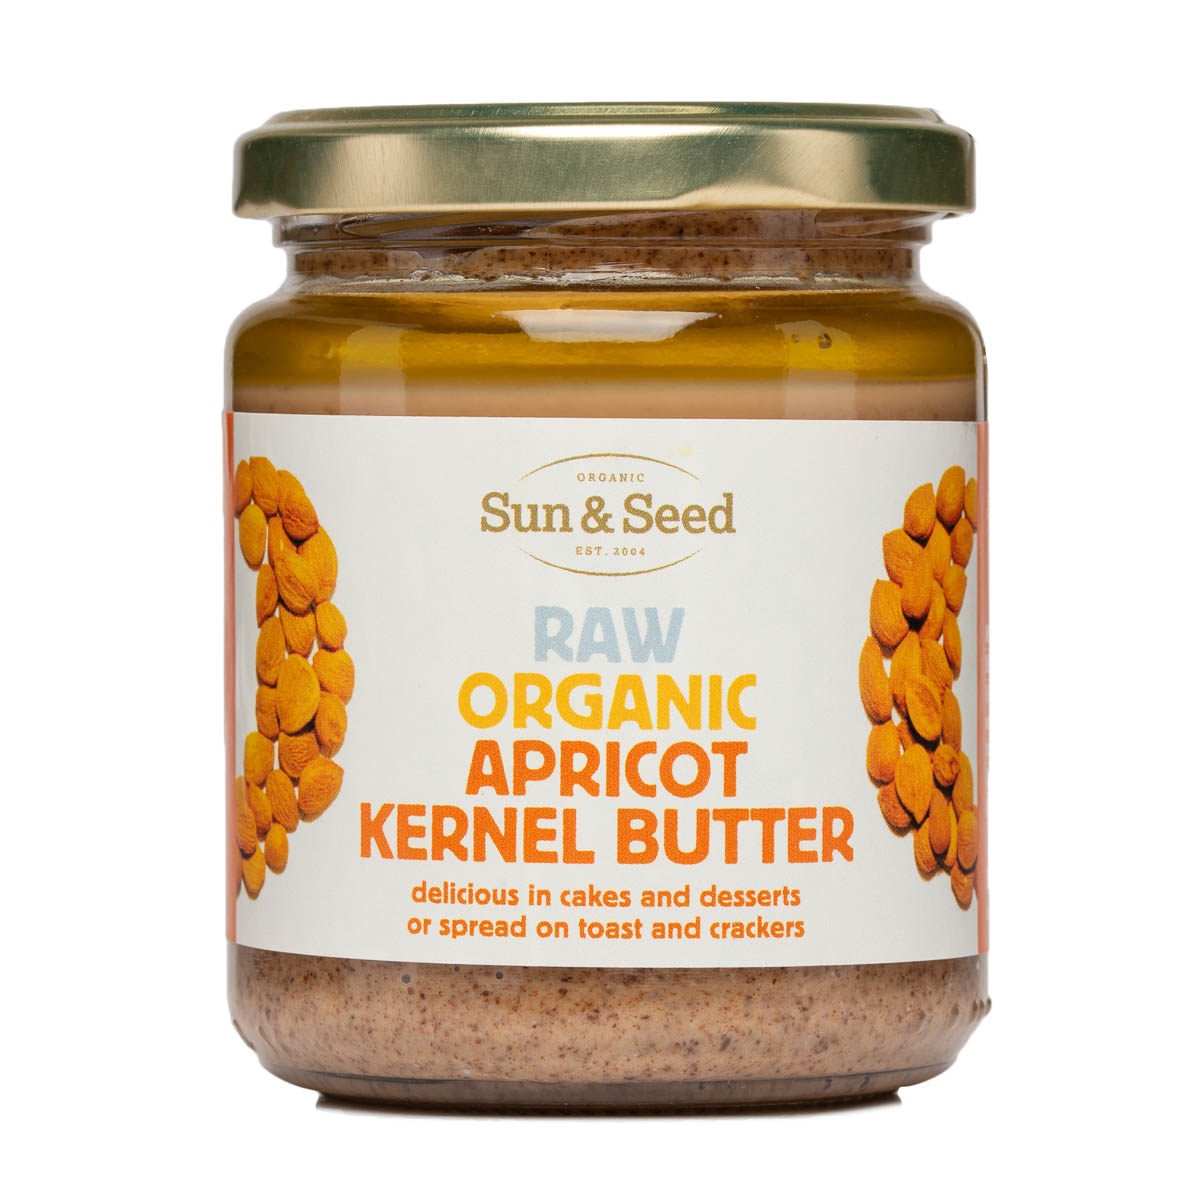 Apricot Kernel Butter - Raw and Organic (250g)